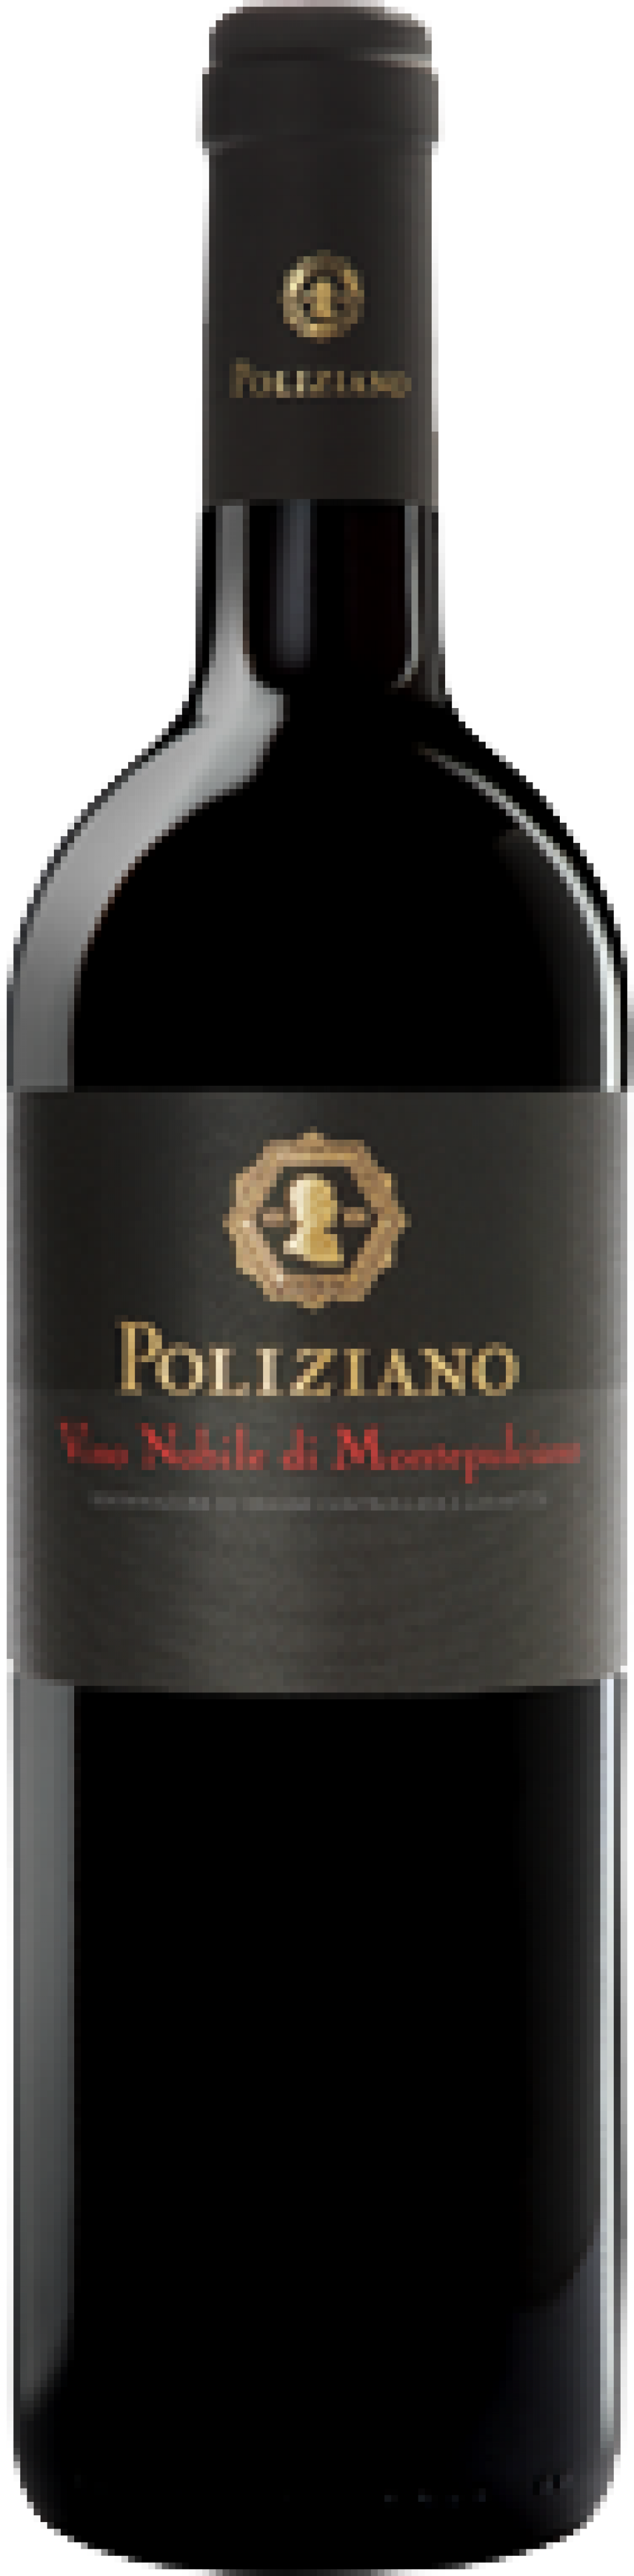 files/images/wines/Italy/poliziano-tuscany/VTPN2011_pic_big.png